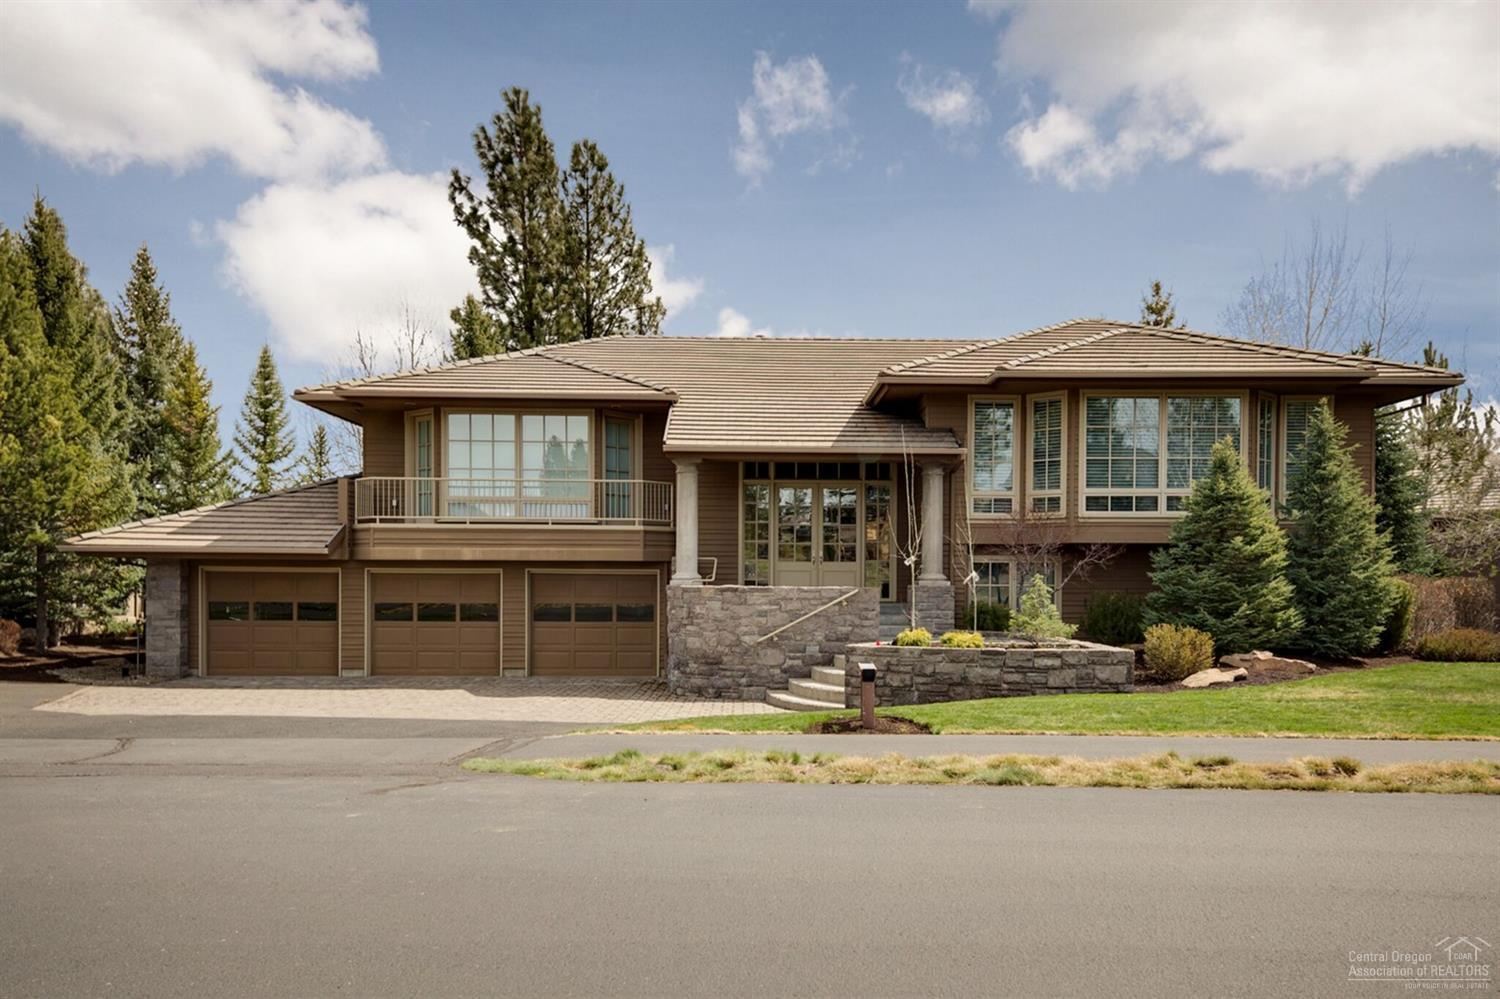 4 bed / 3 full, 1 partial baths Home in Bend for $1,375,000